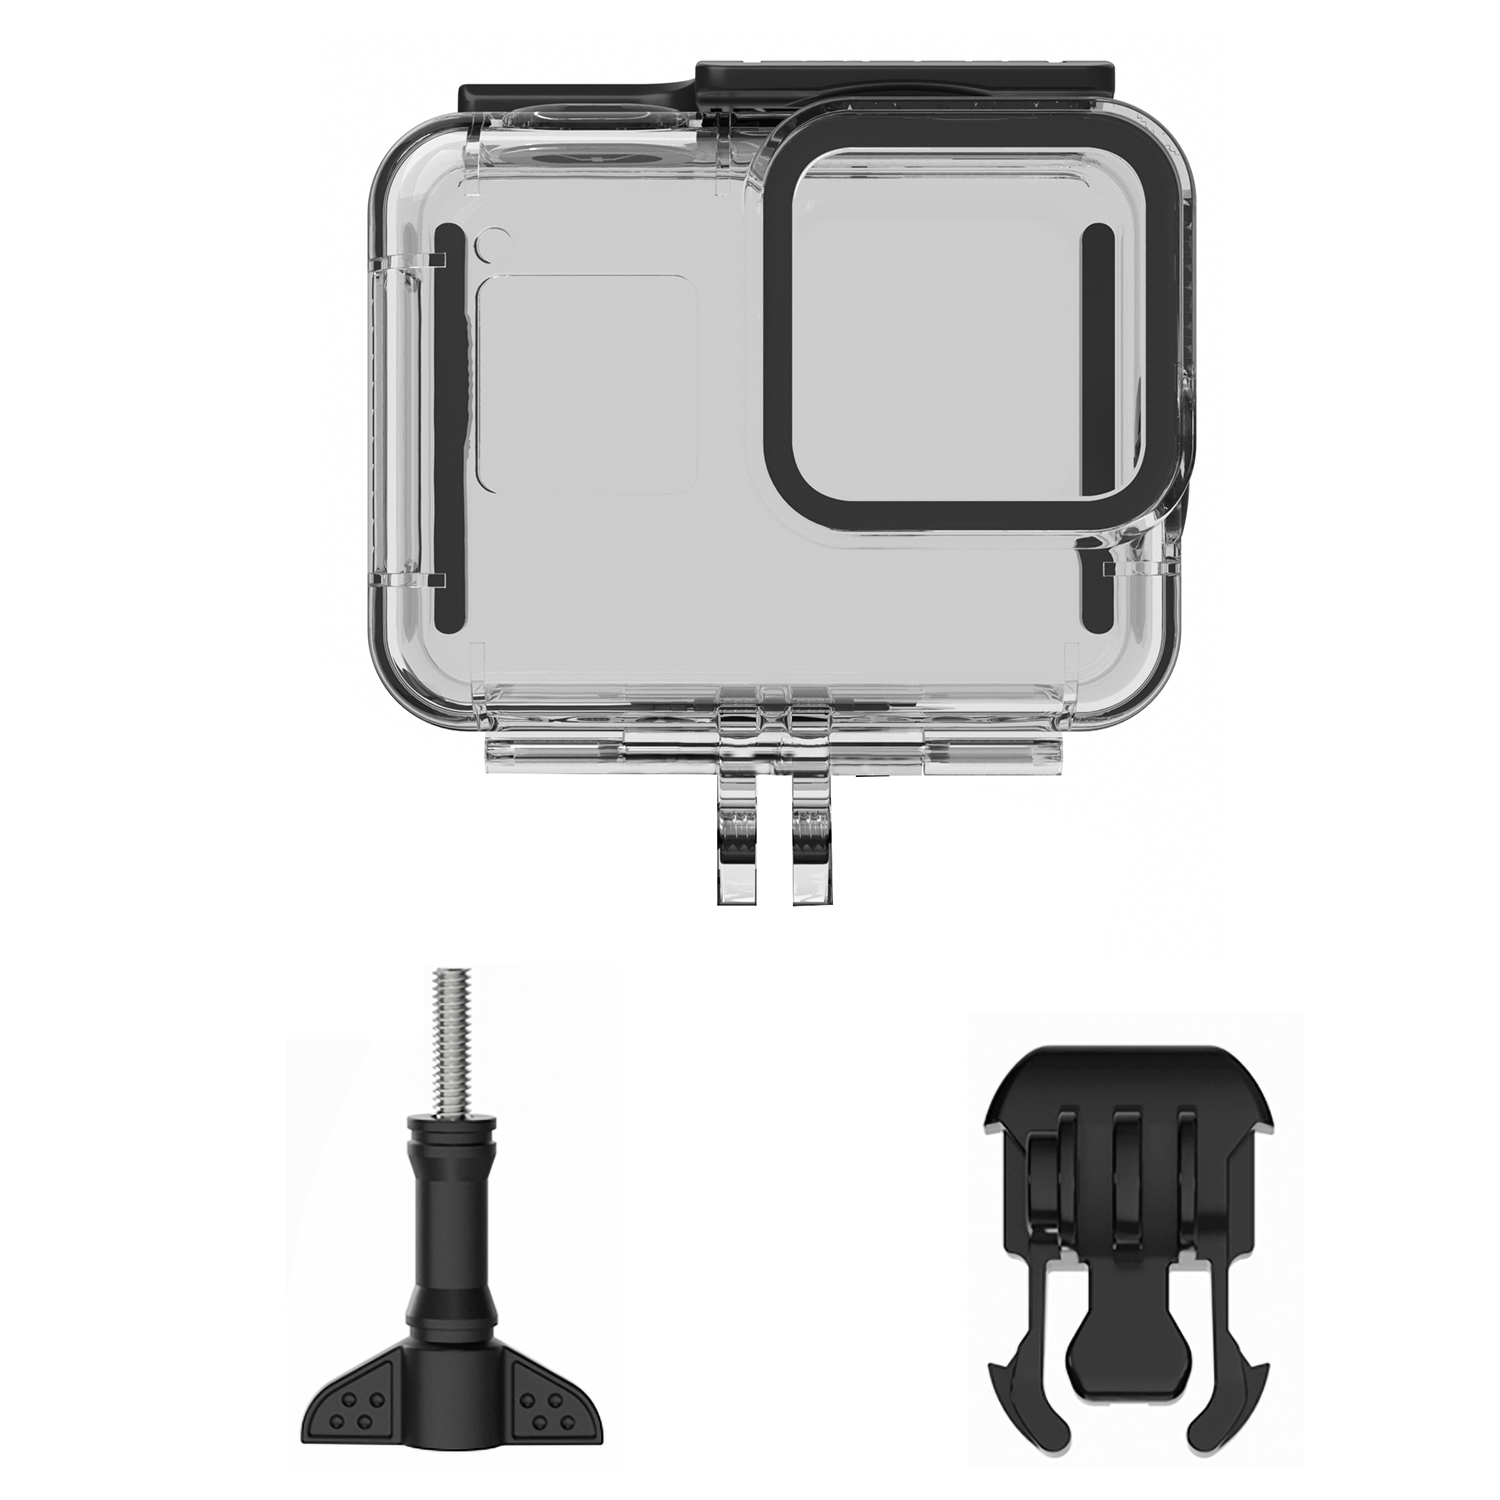 Soft Rubber Key Waterproof Housing Shell For GoPro Hero 8 Black Diving Protection Case Filters for Gopro8 Action Camera  Transparent